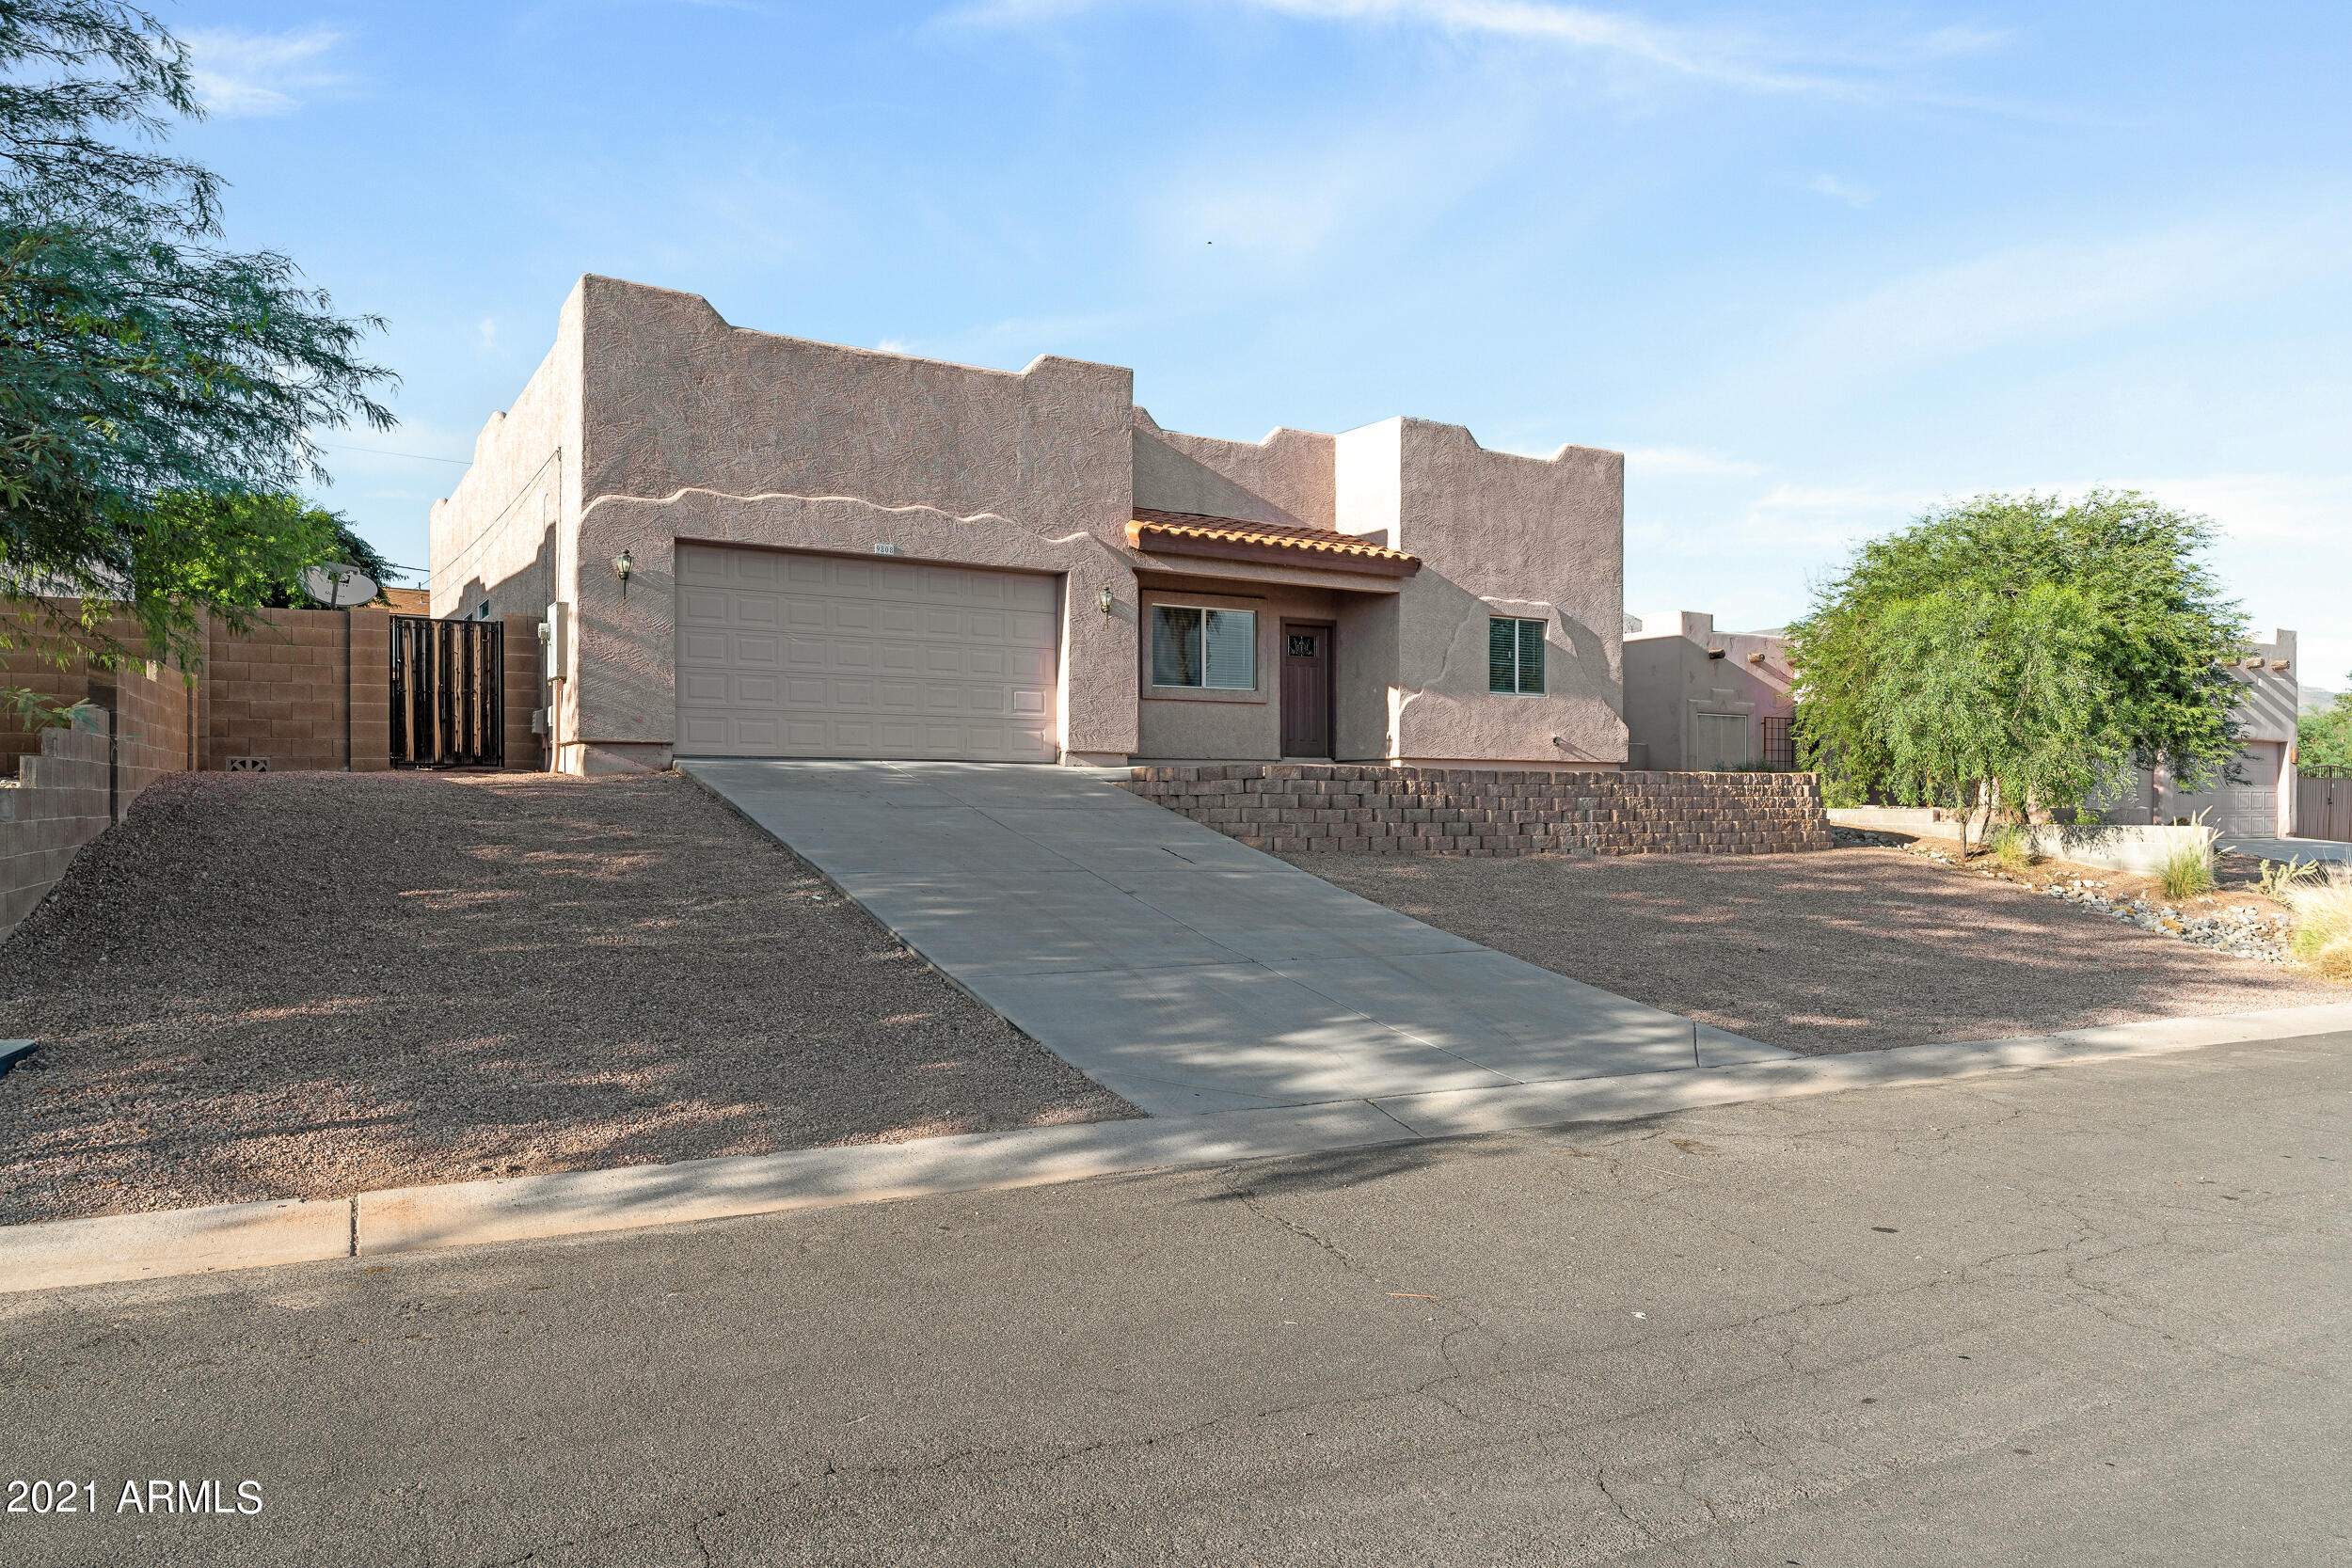 9808 E Fortuna Avenue, Gold Canyon, AZ 85118, 4 Bedrooms Bedrooms, ,Residential,For Sale,9808 E Fortuna Avenue,6298794